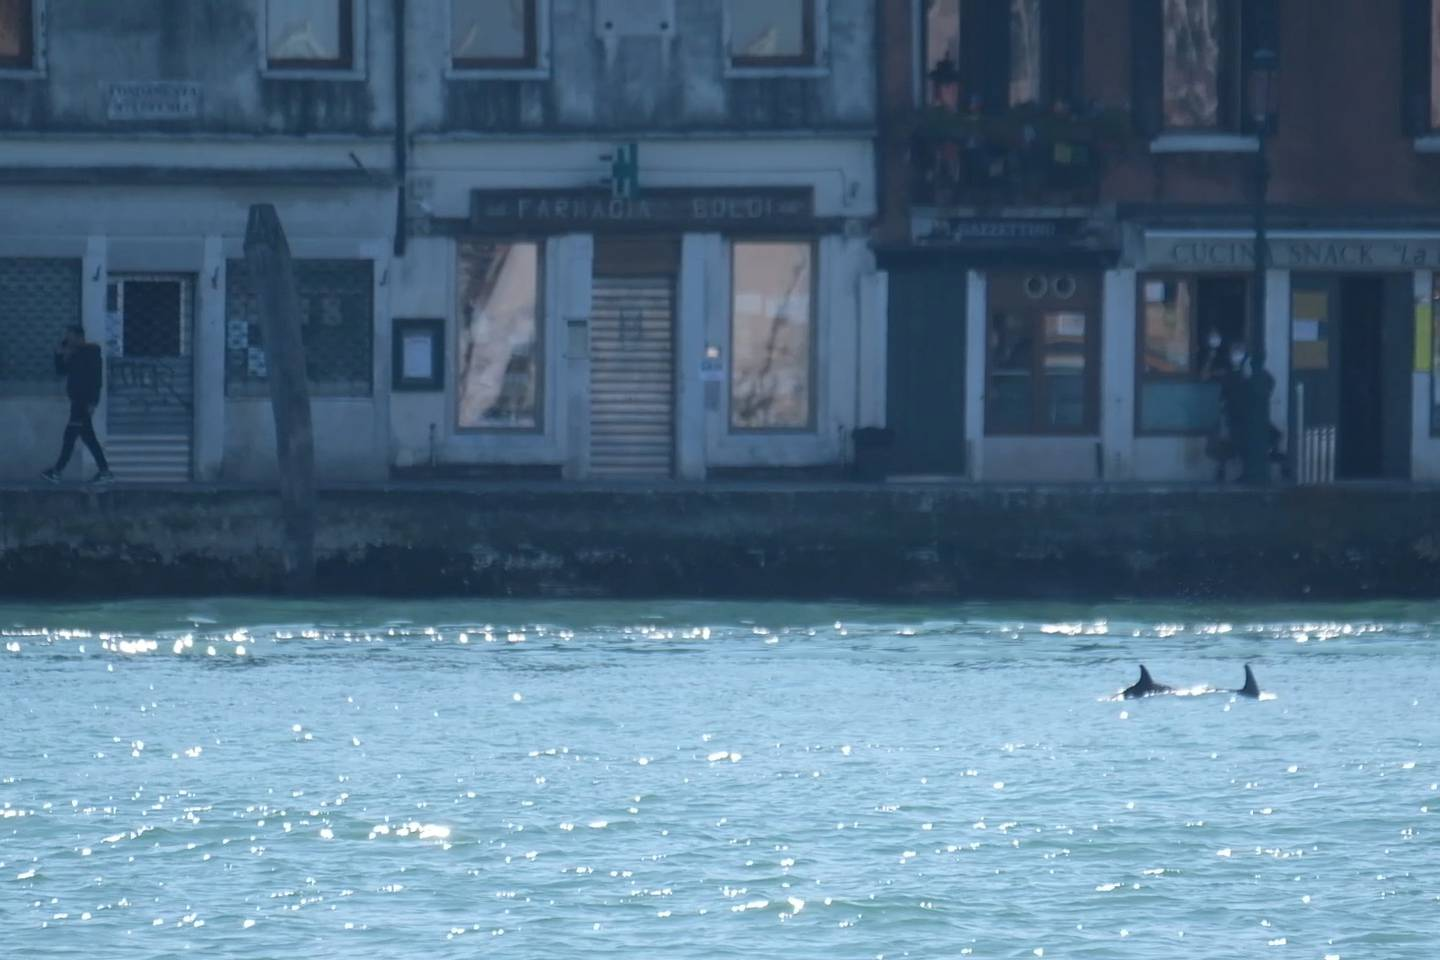 A screengrab taken from a video shows dolphins swimming in the Giudecca Canal, not far from St. Mark's Square, in Venice, Italy, March, 22, 2021. Manuel Silvestri/REUTERS TV via REUTERS